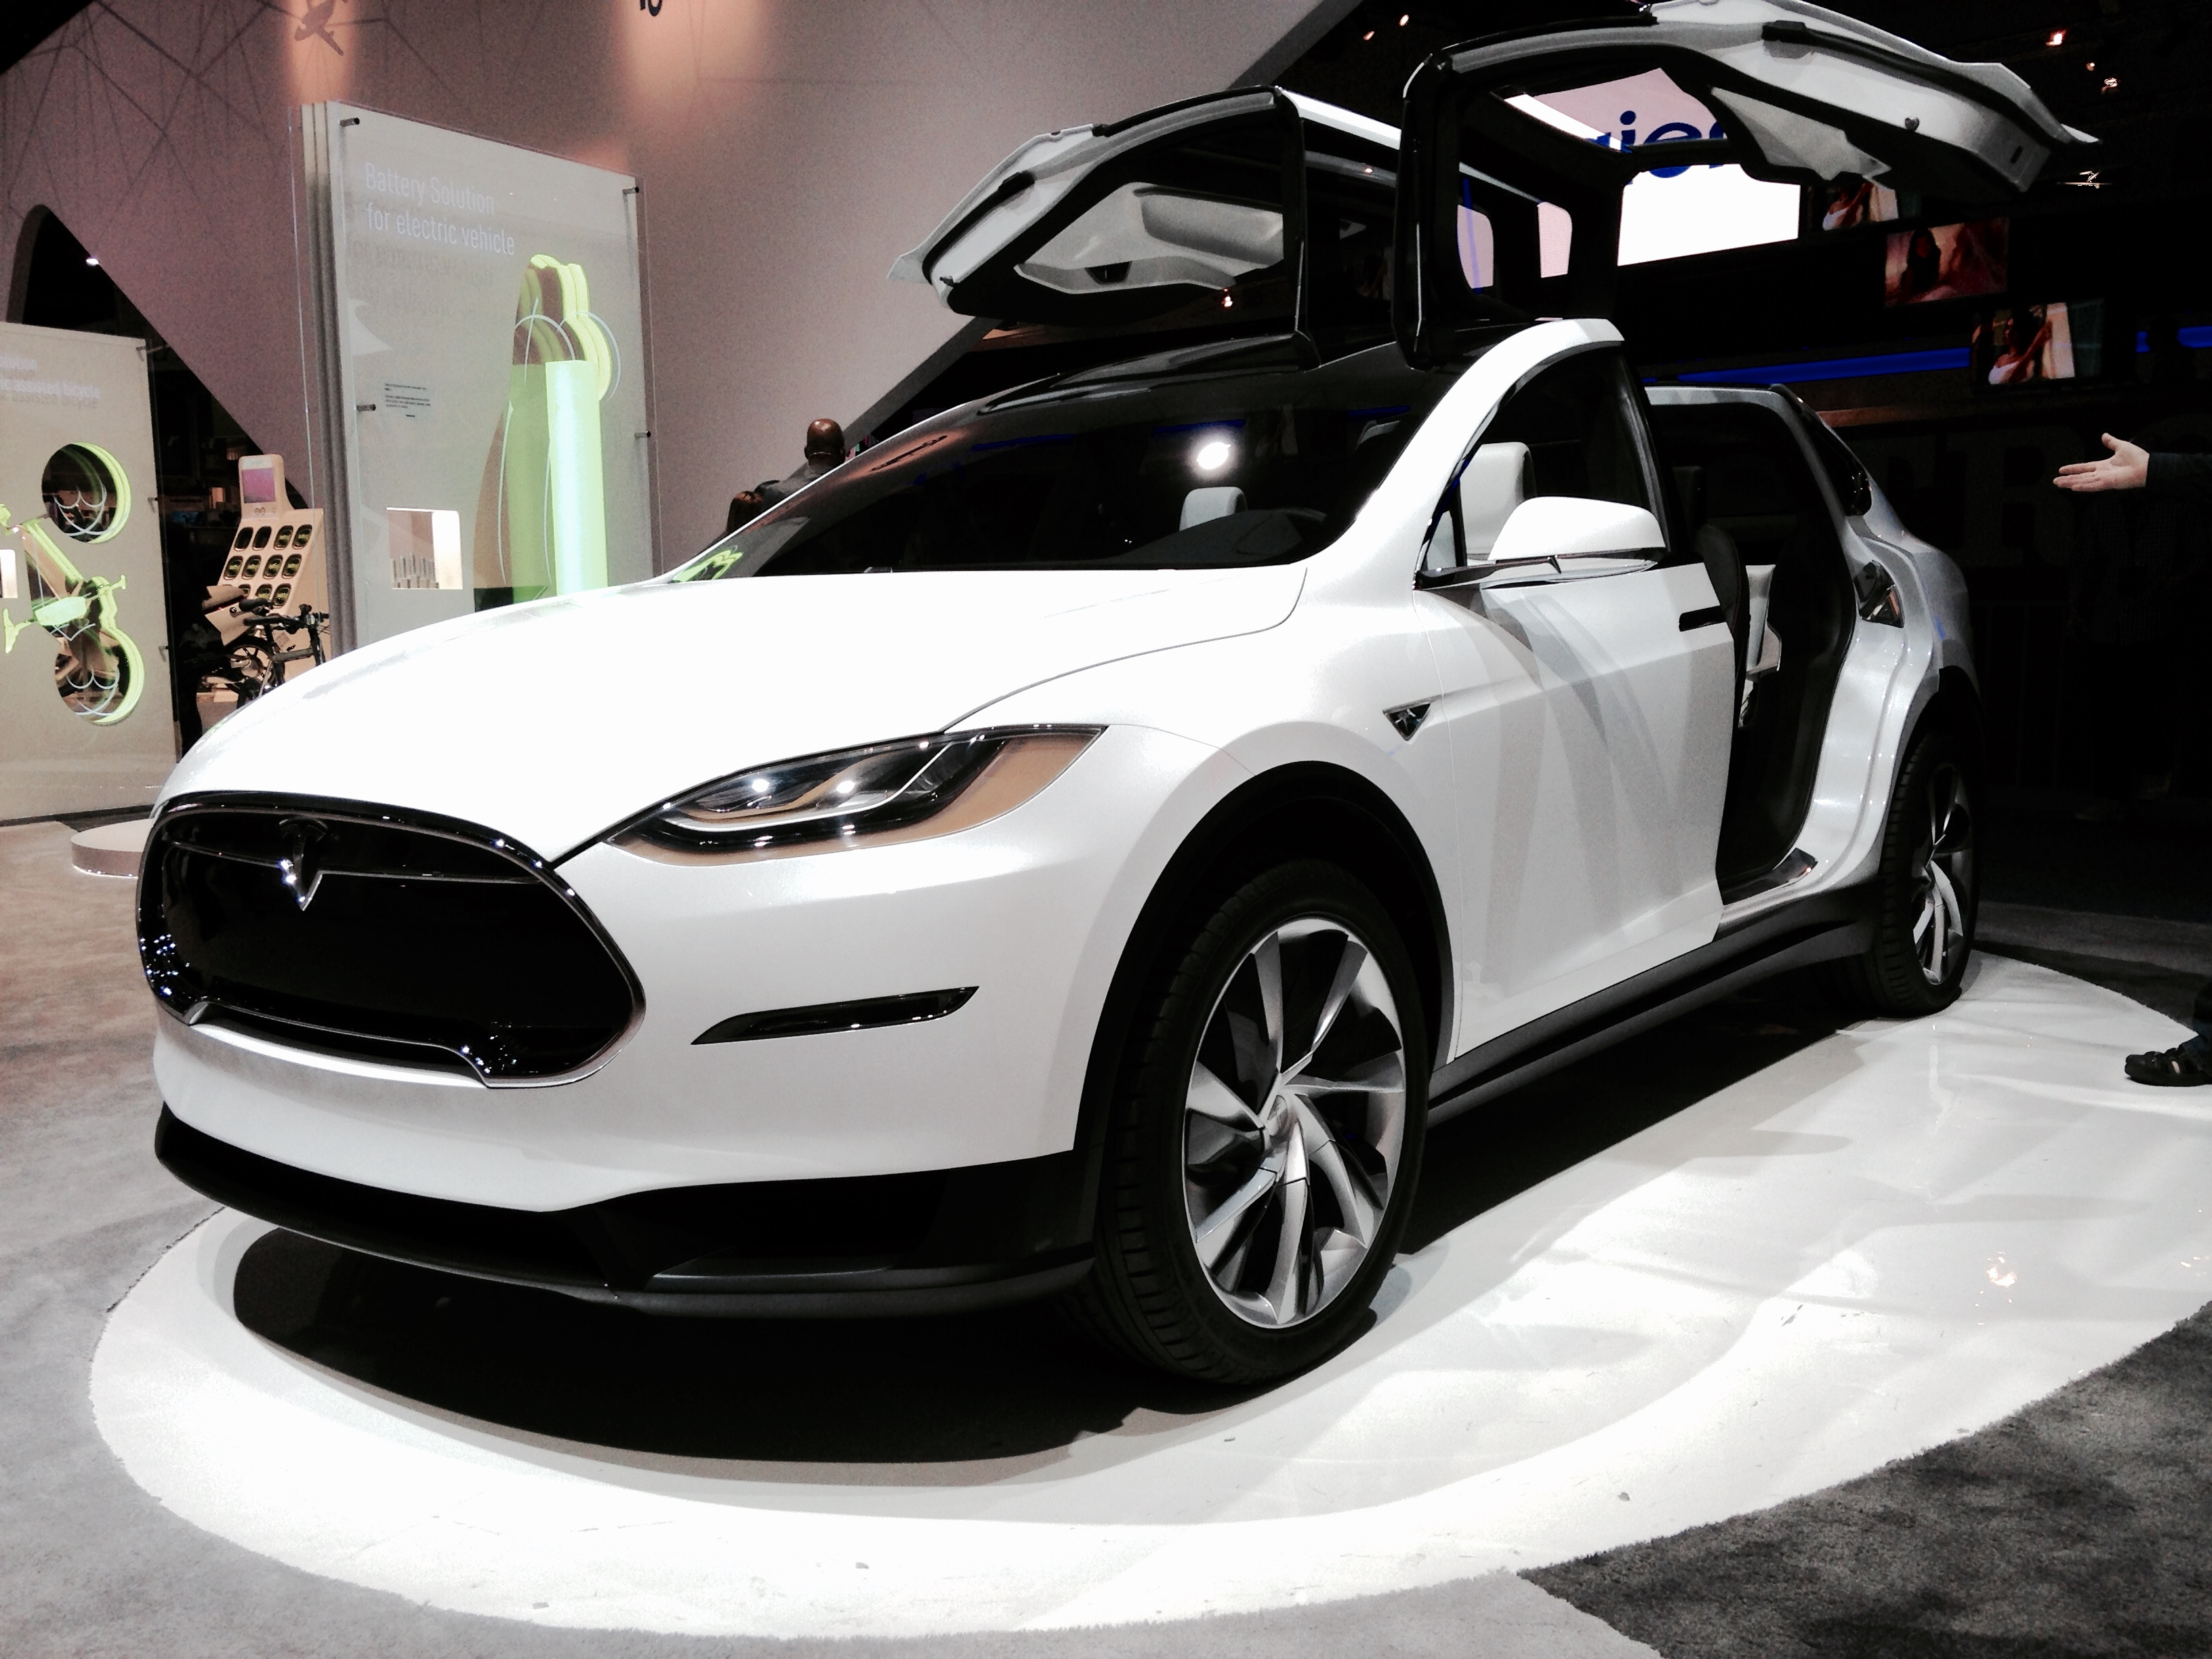 Ford Paid $200,000 for an Early Tesla Model X Founders Series ...